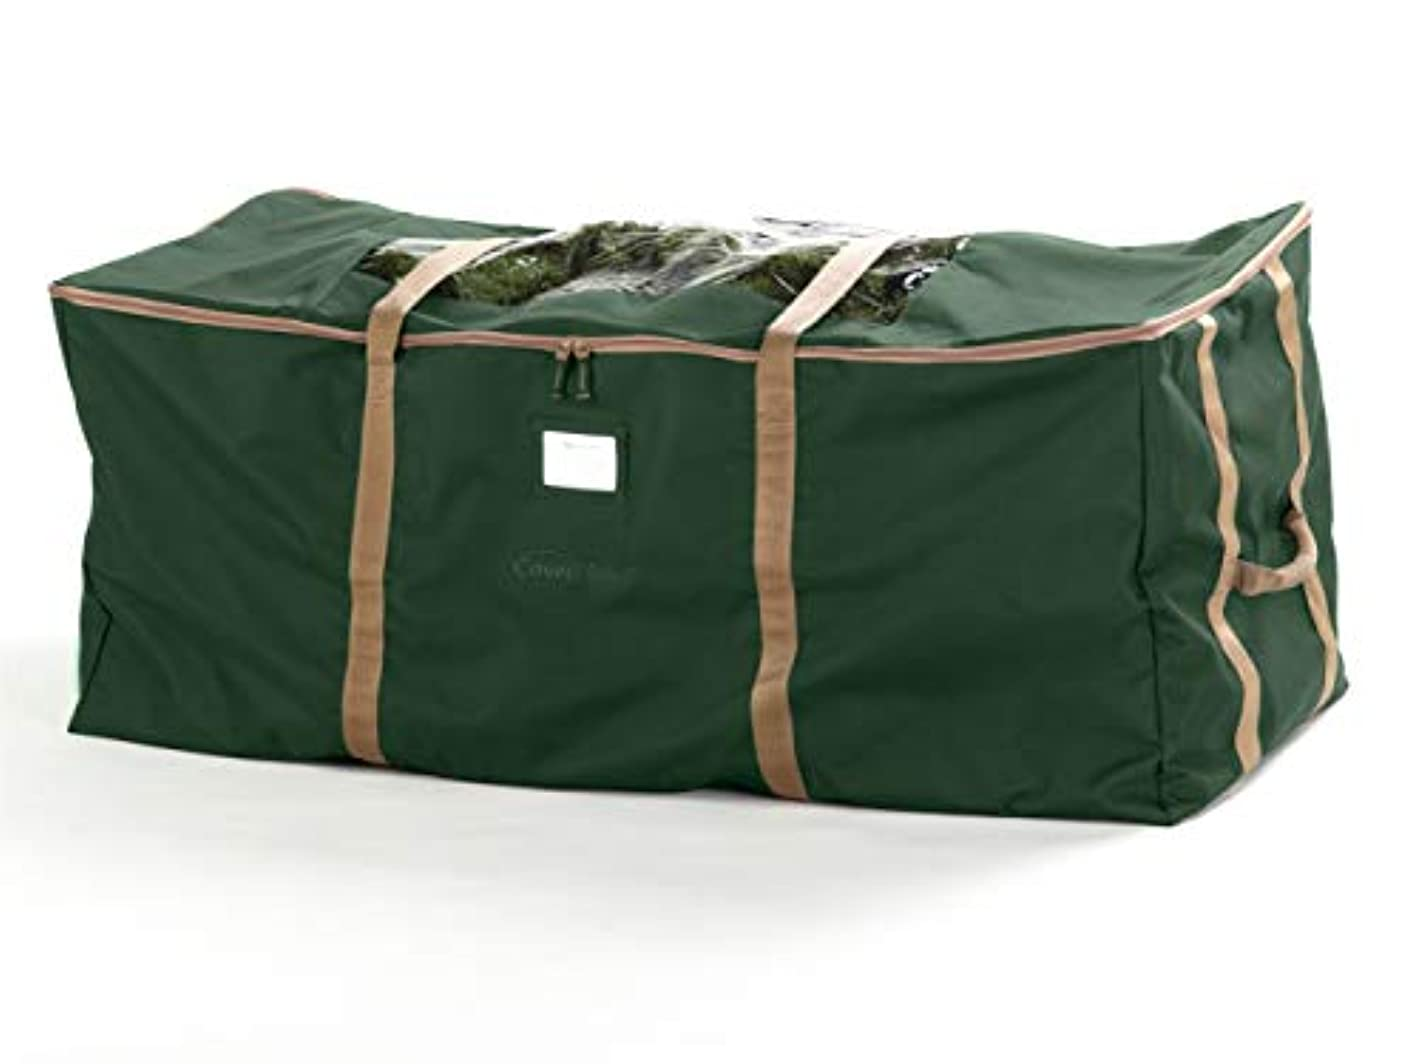 Covermates – Holiday Tree Storage Bag – Fits up to 7.5 Foot Tree – 3 Year Warranty - Green